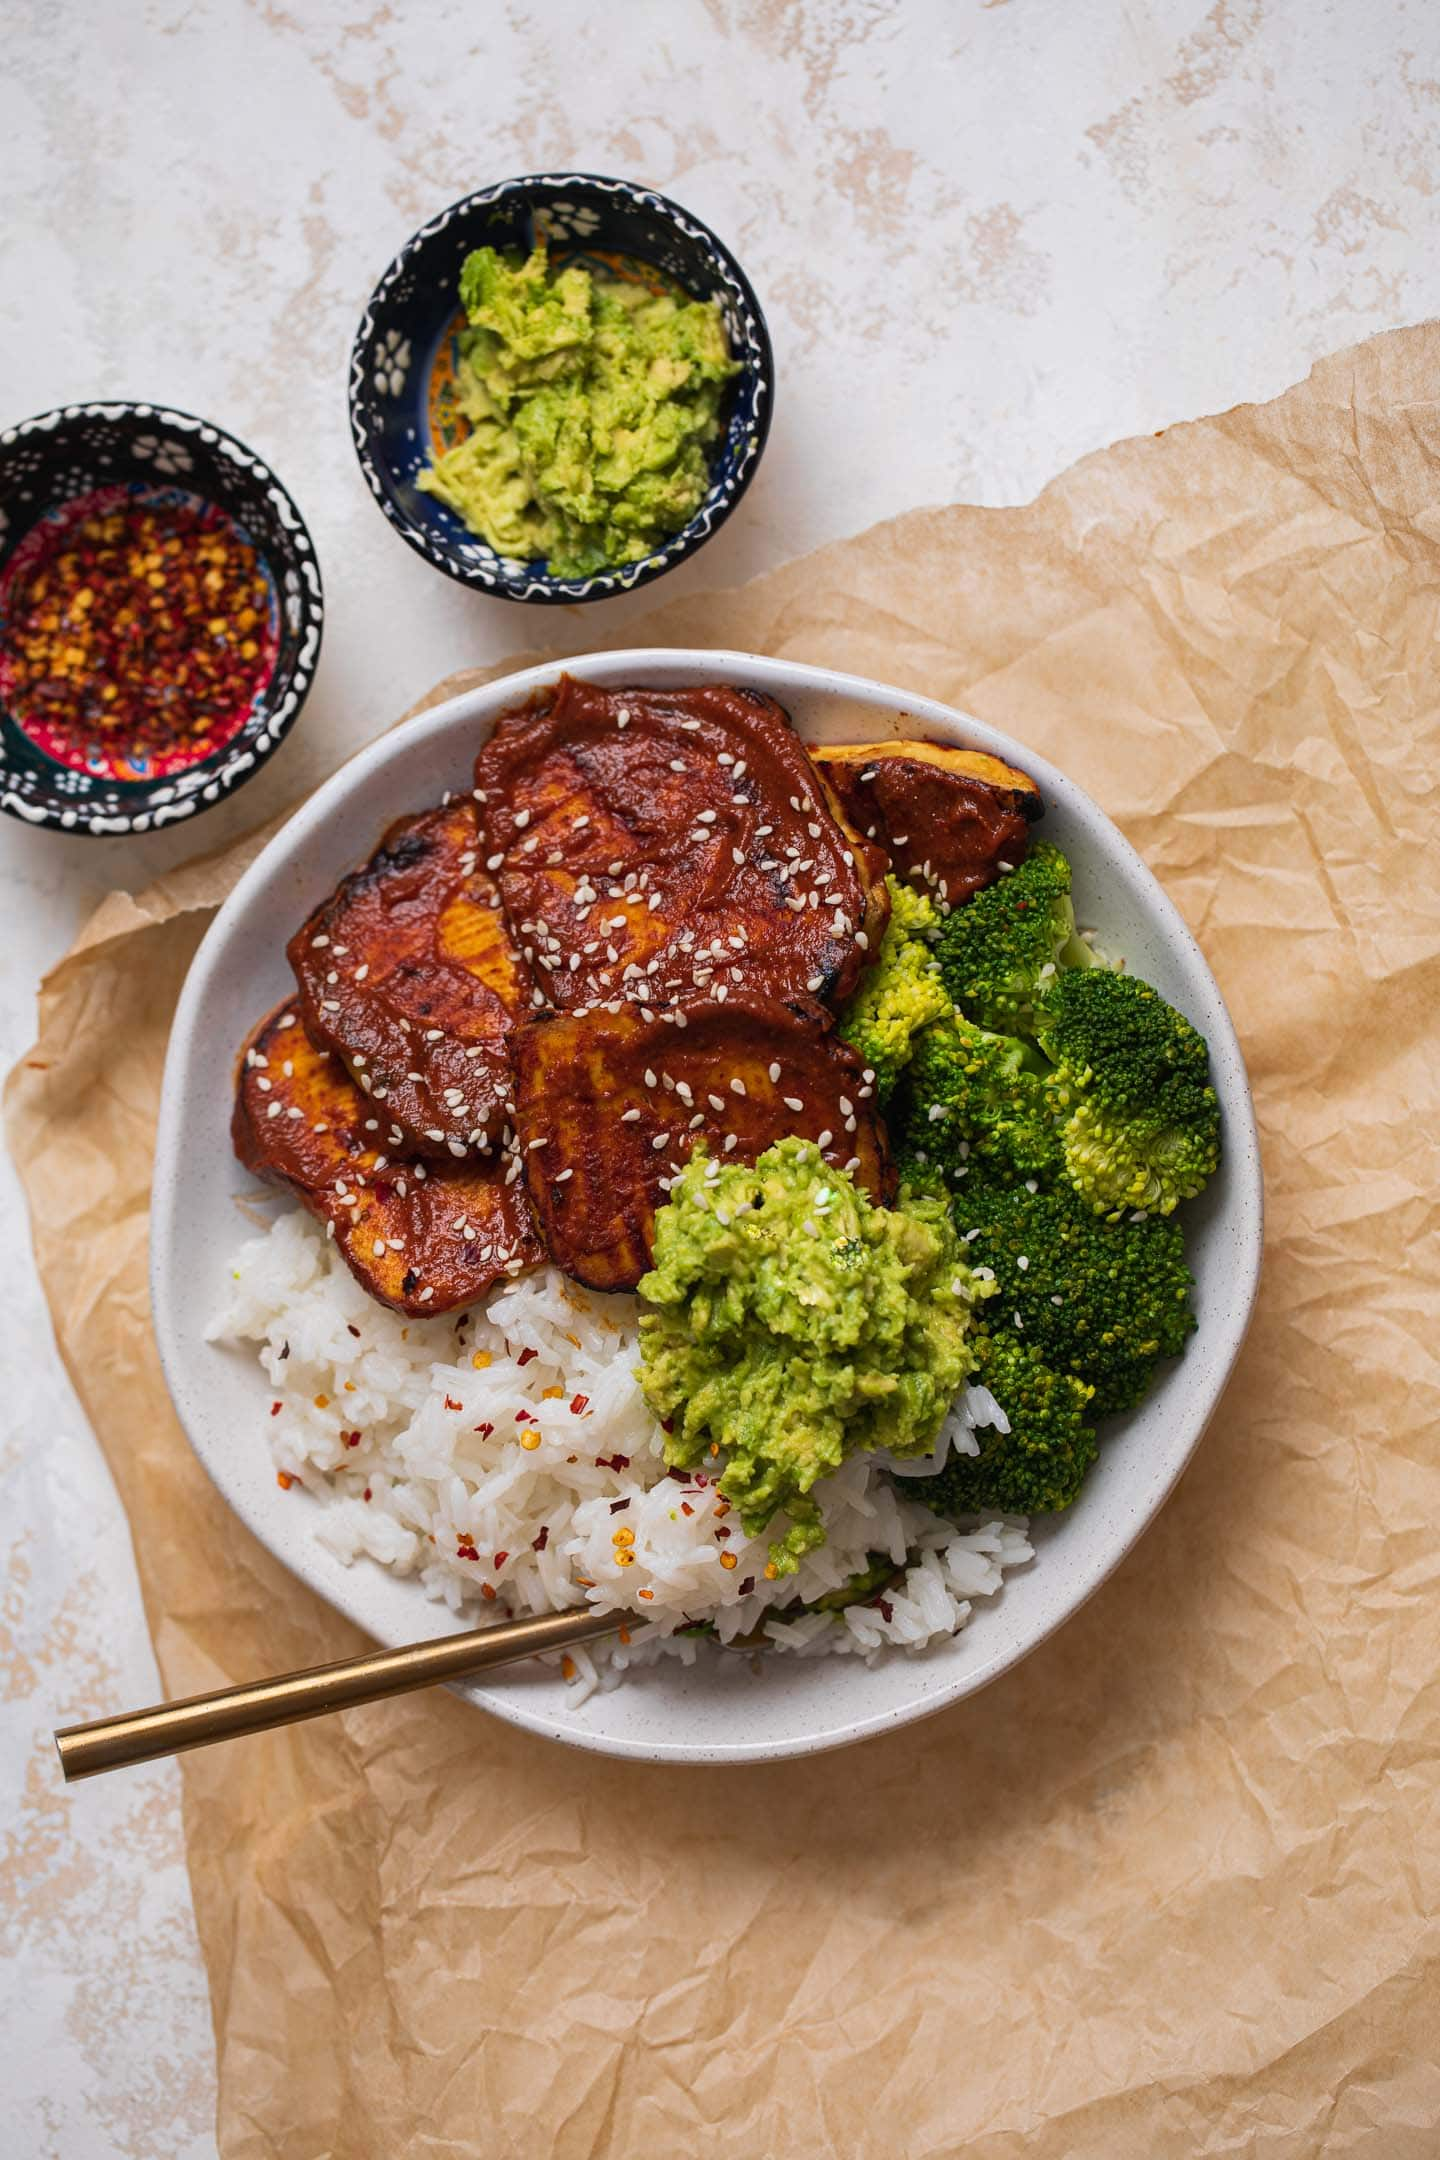 Bowl with tofu steaks, rice, and broccoli